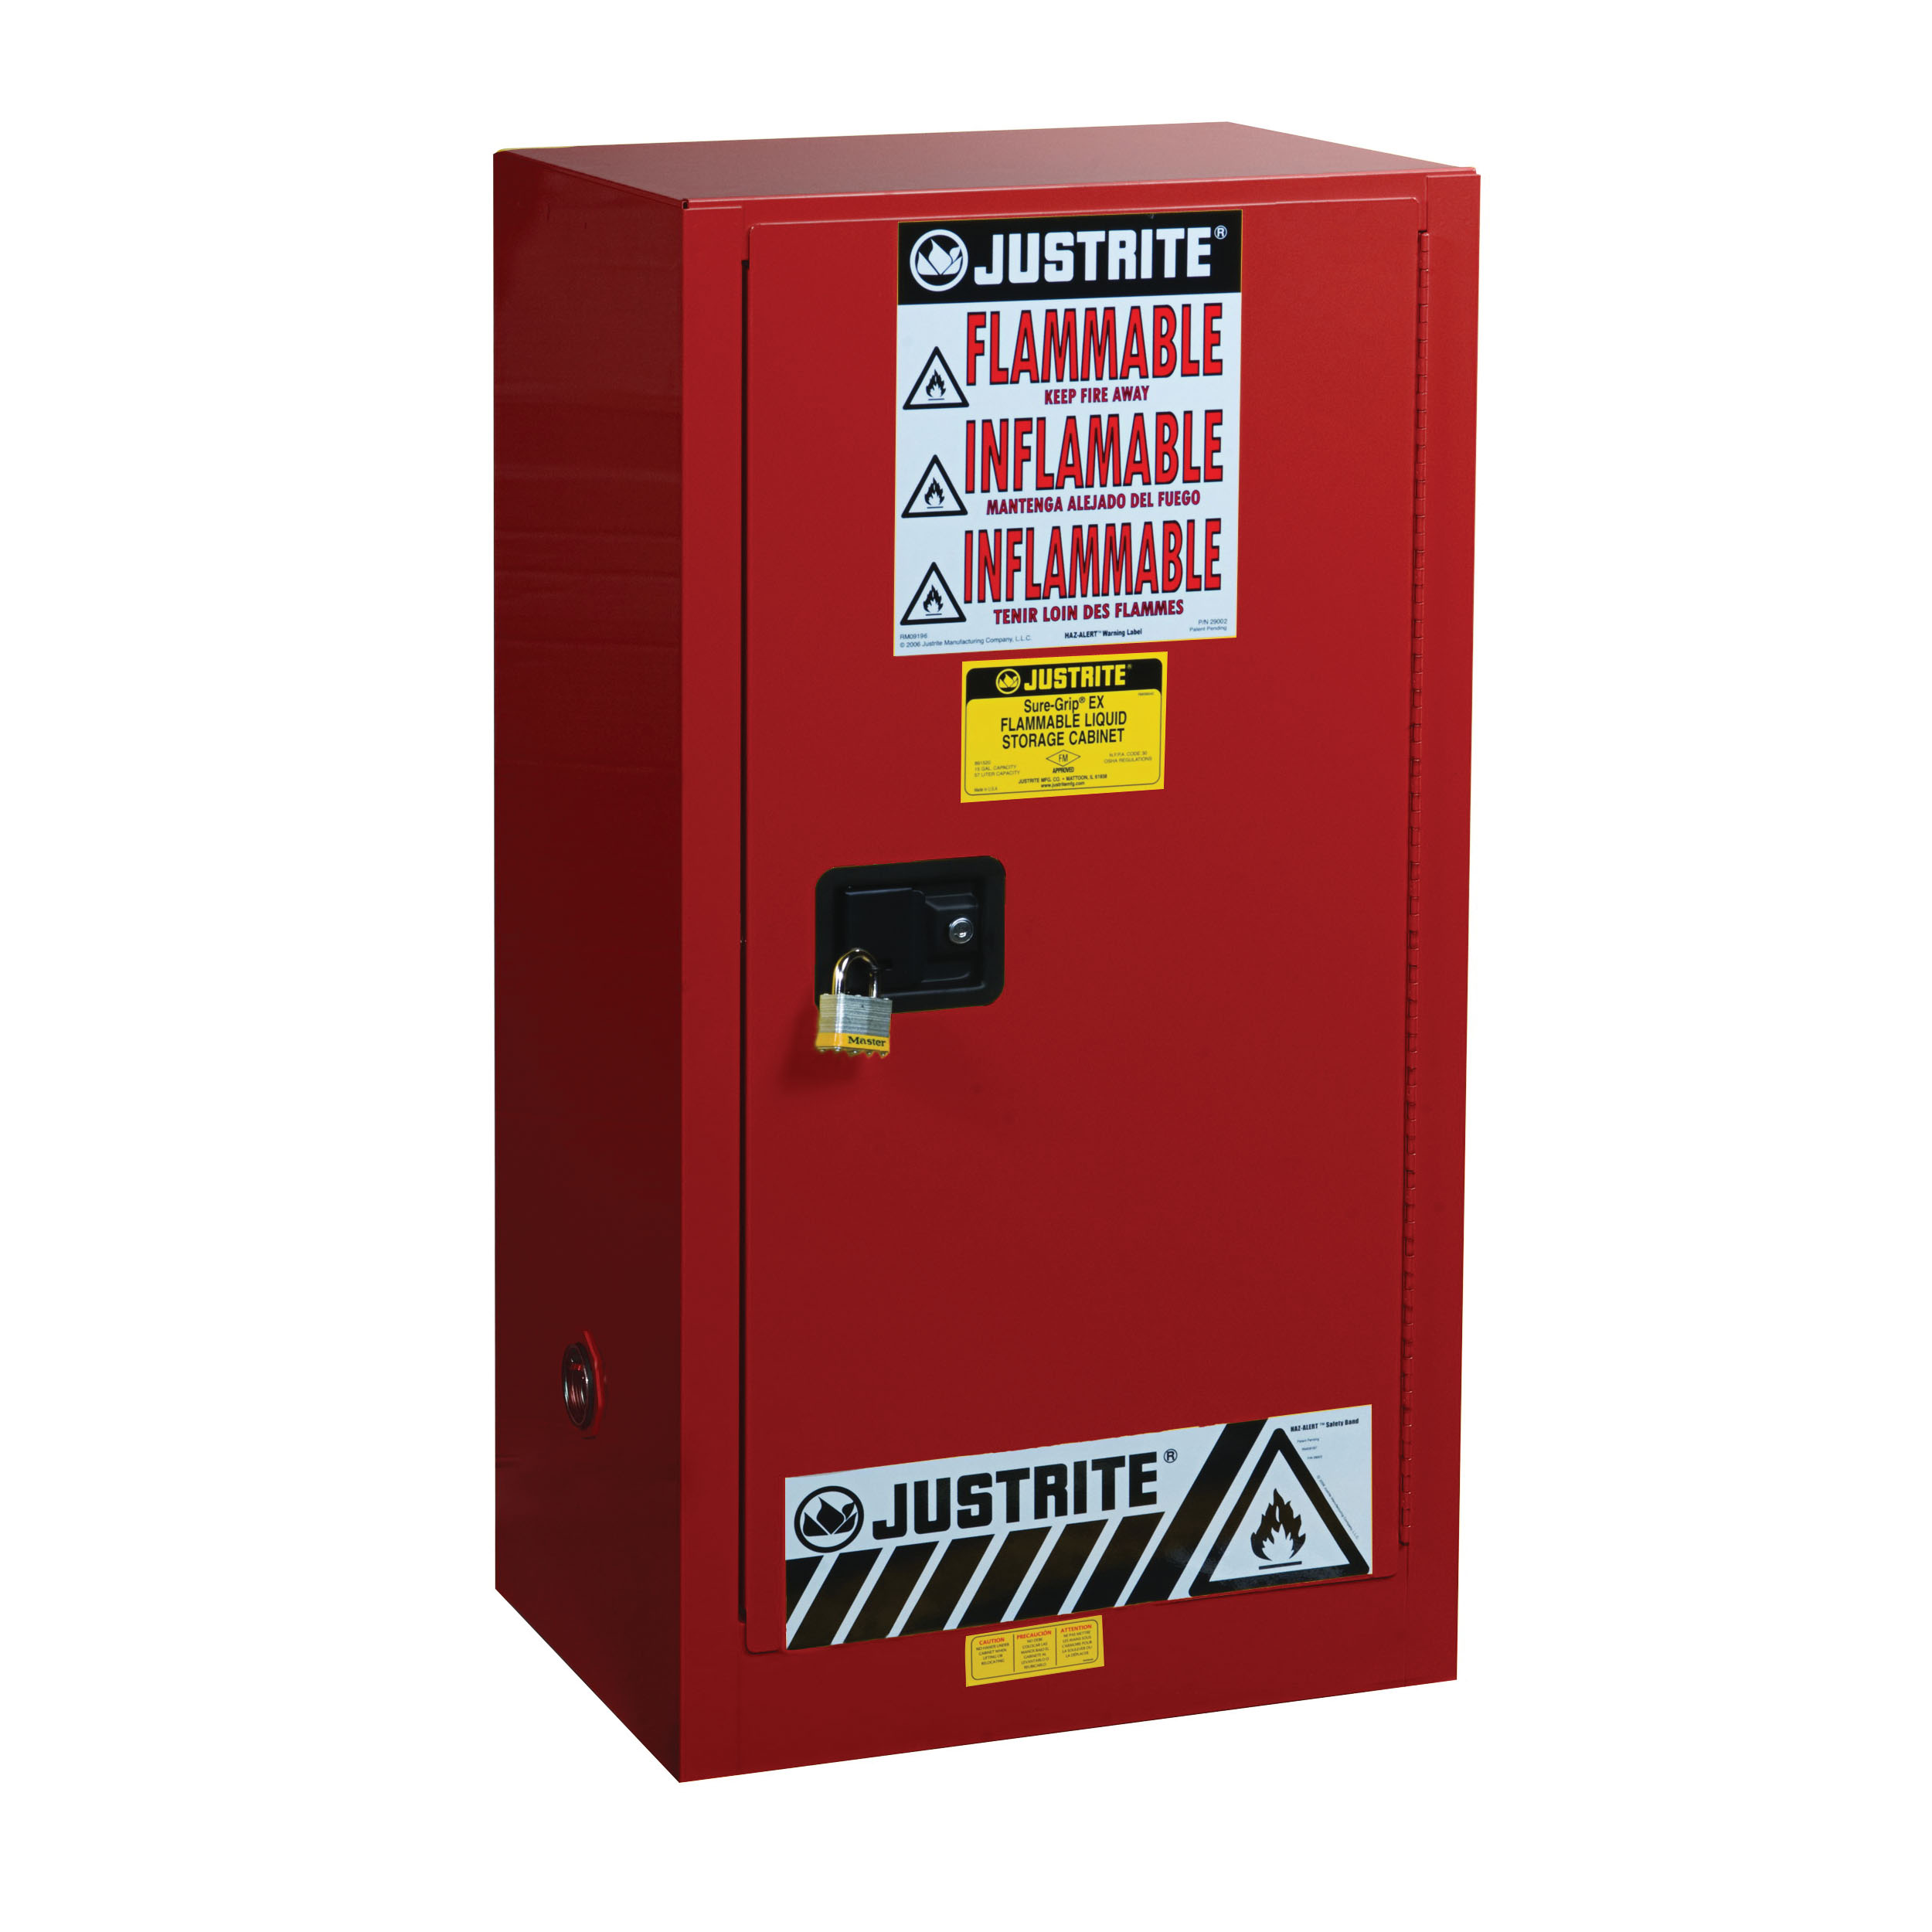 Justrite® 891511 Sure-Grip® EX Standard Combustible Safety Cabinet, 20 gal Capacity, U-Loc™ Handle, 44 in H x 23-1/4 in W x 18 in D, Manual Close Door, 1 Doors, 2 Shelves, Cold Rolled Steel, Red